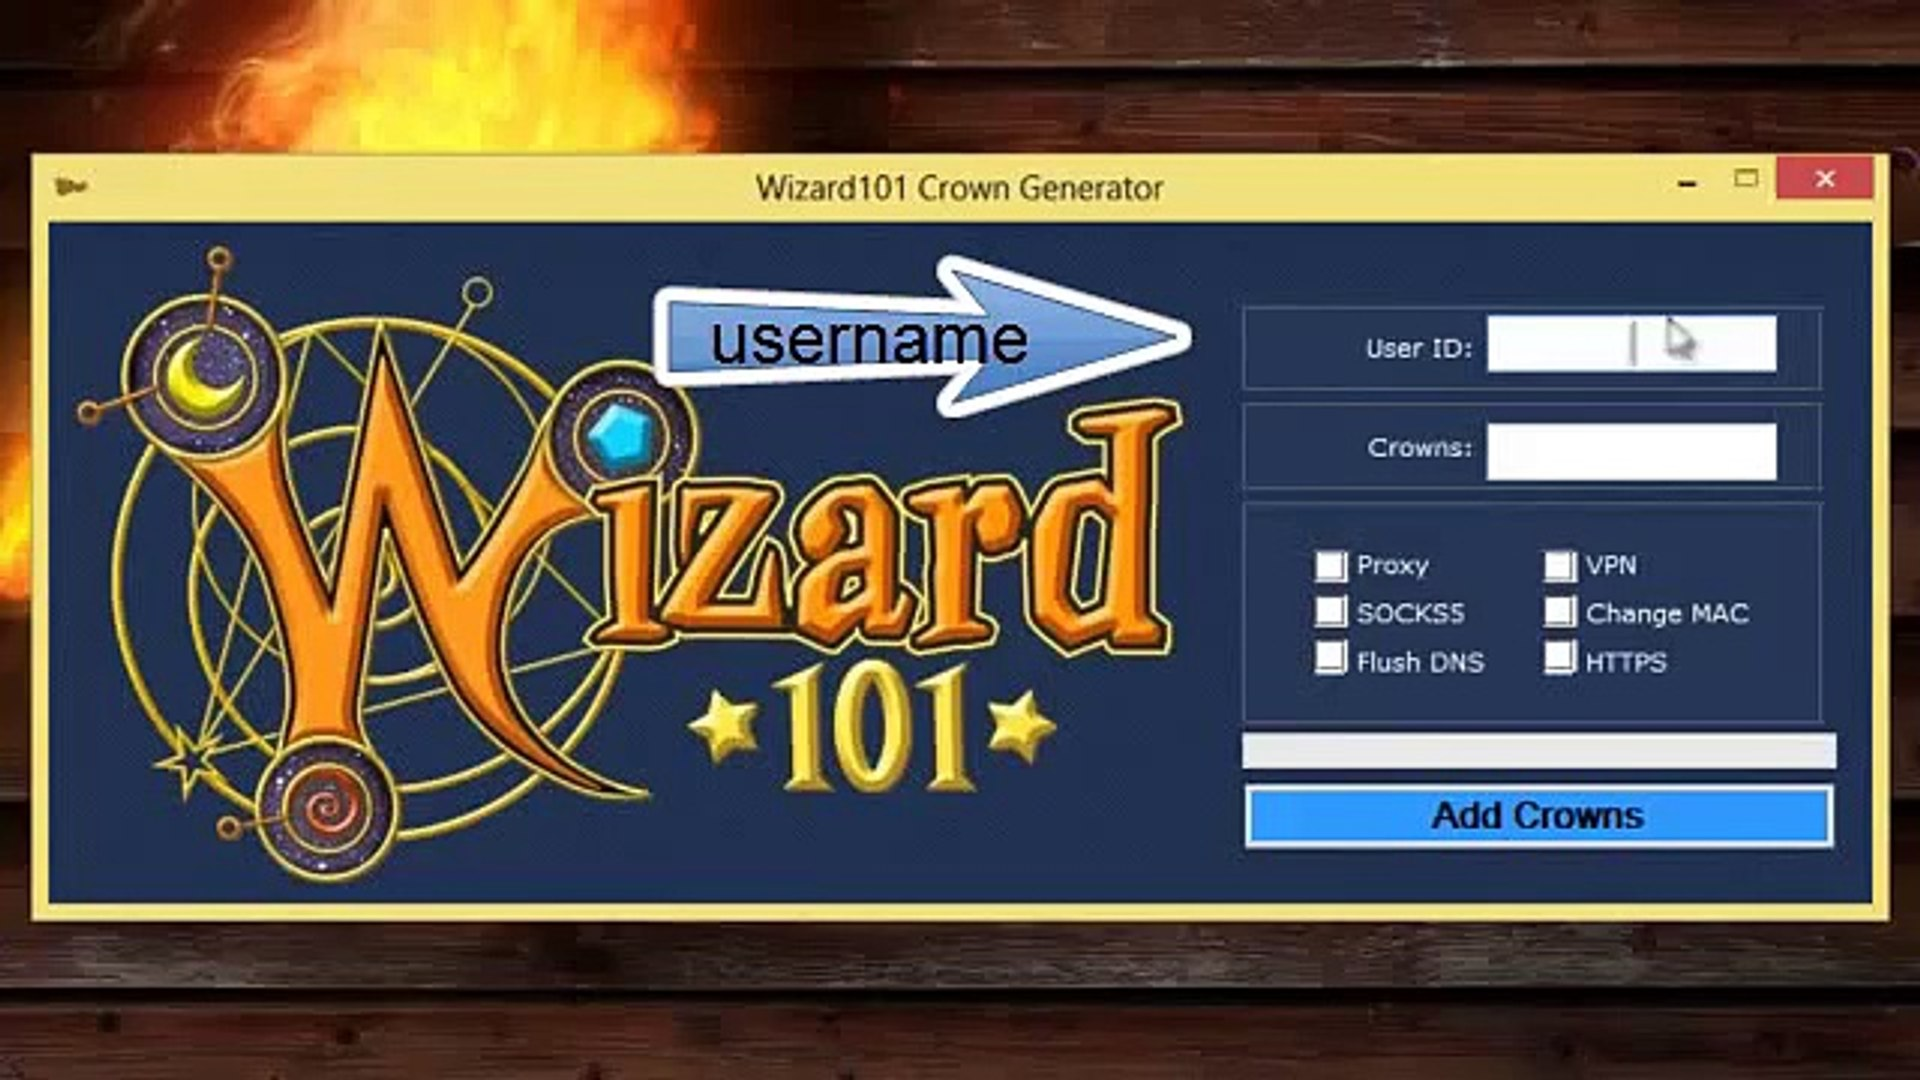 Wizard 101 Crown Generator 2016 For Free Crowns